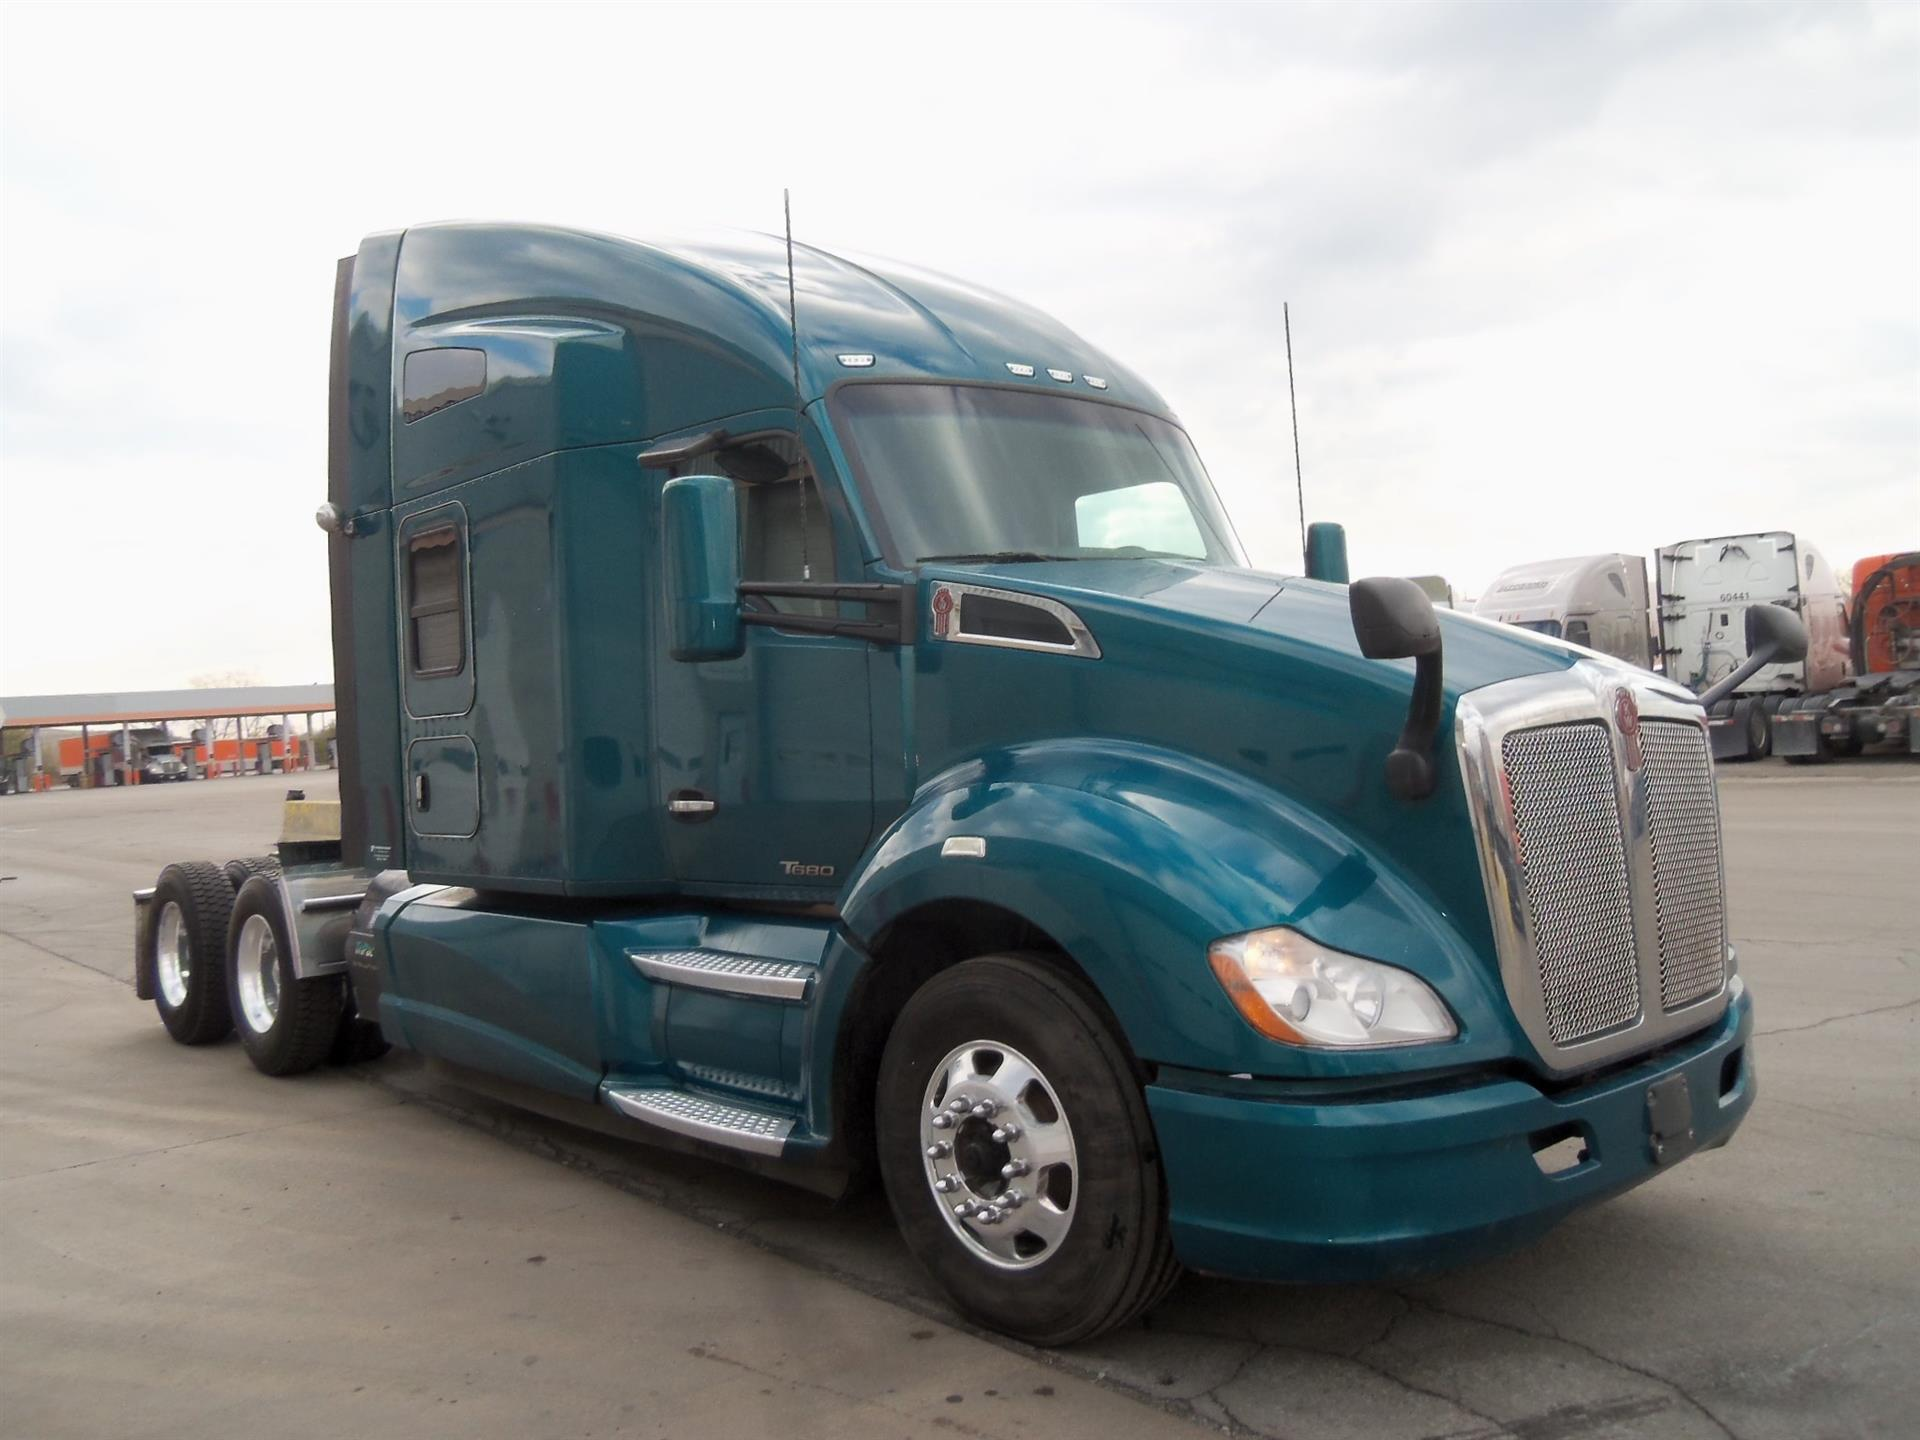 USED 2016 KENWORTH UNKNOWN SLEEPER TRUCK #135055